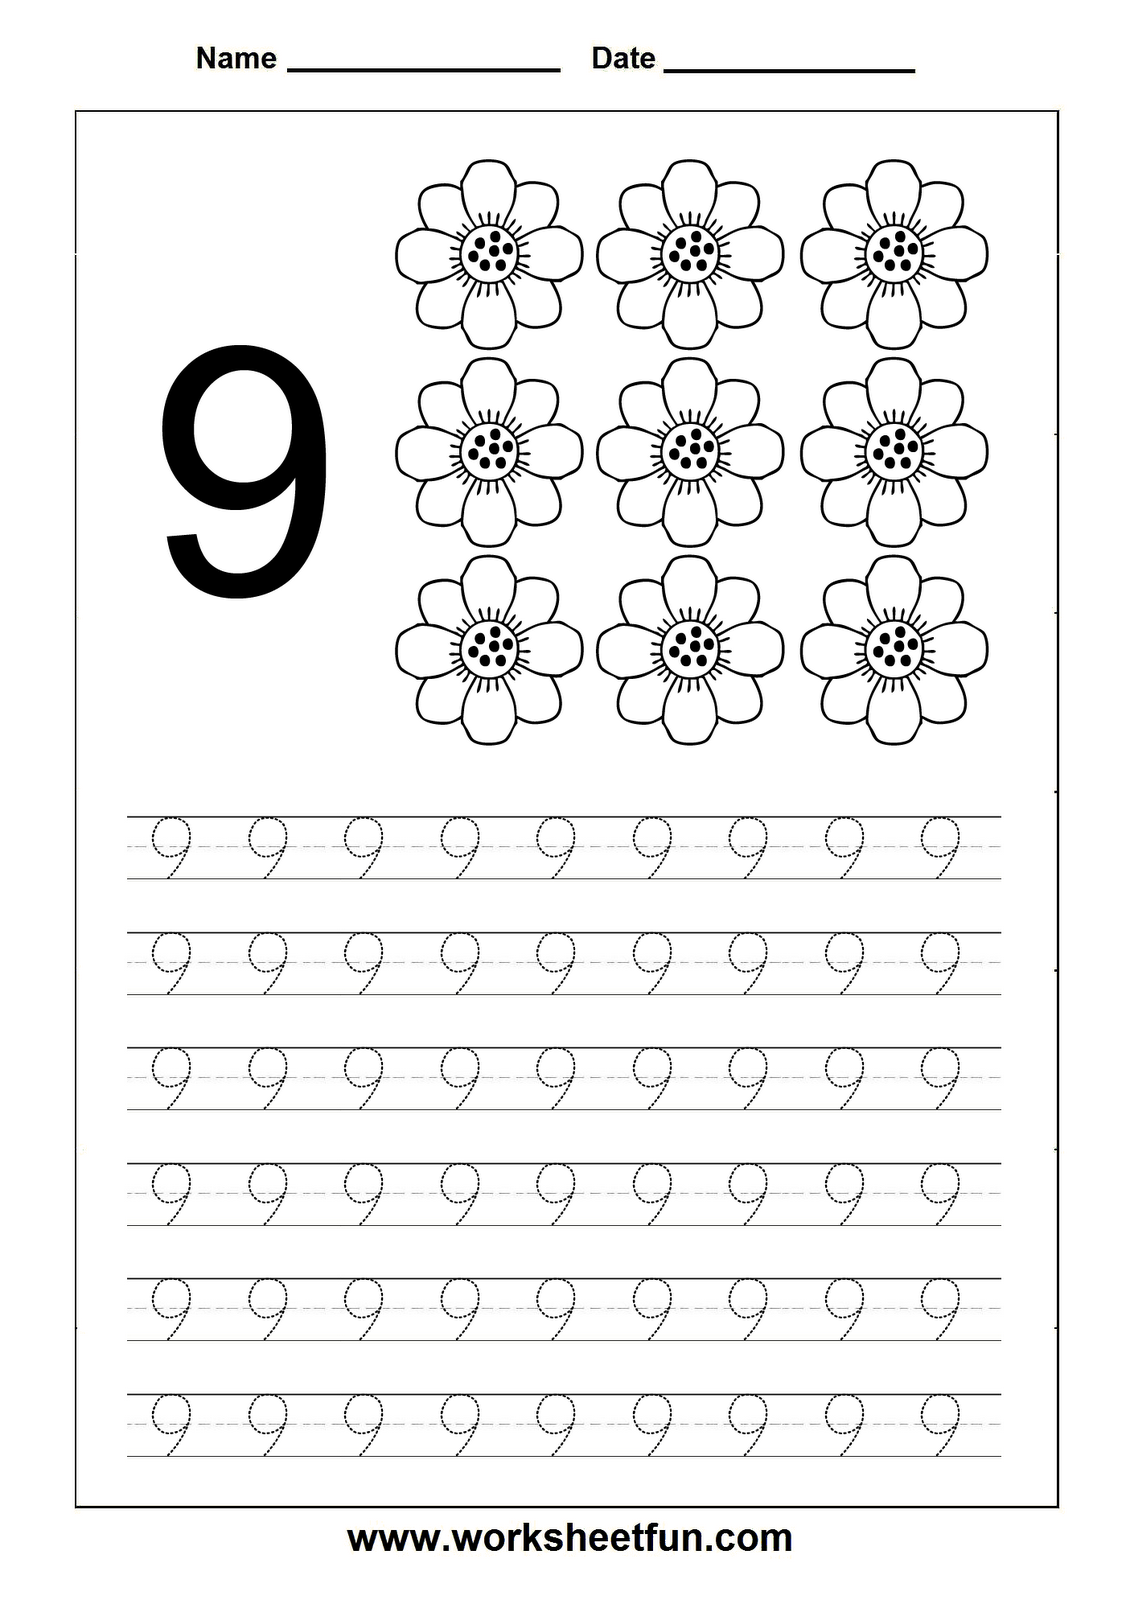 Numbers tracing printables for preschoolers - Number Tracing Worksheet 9